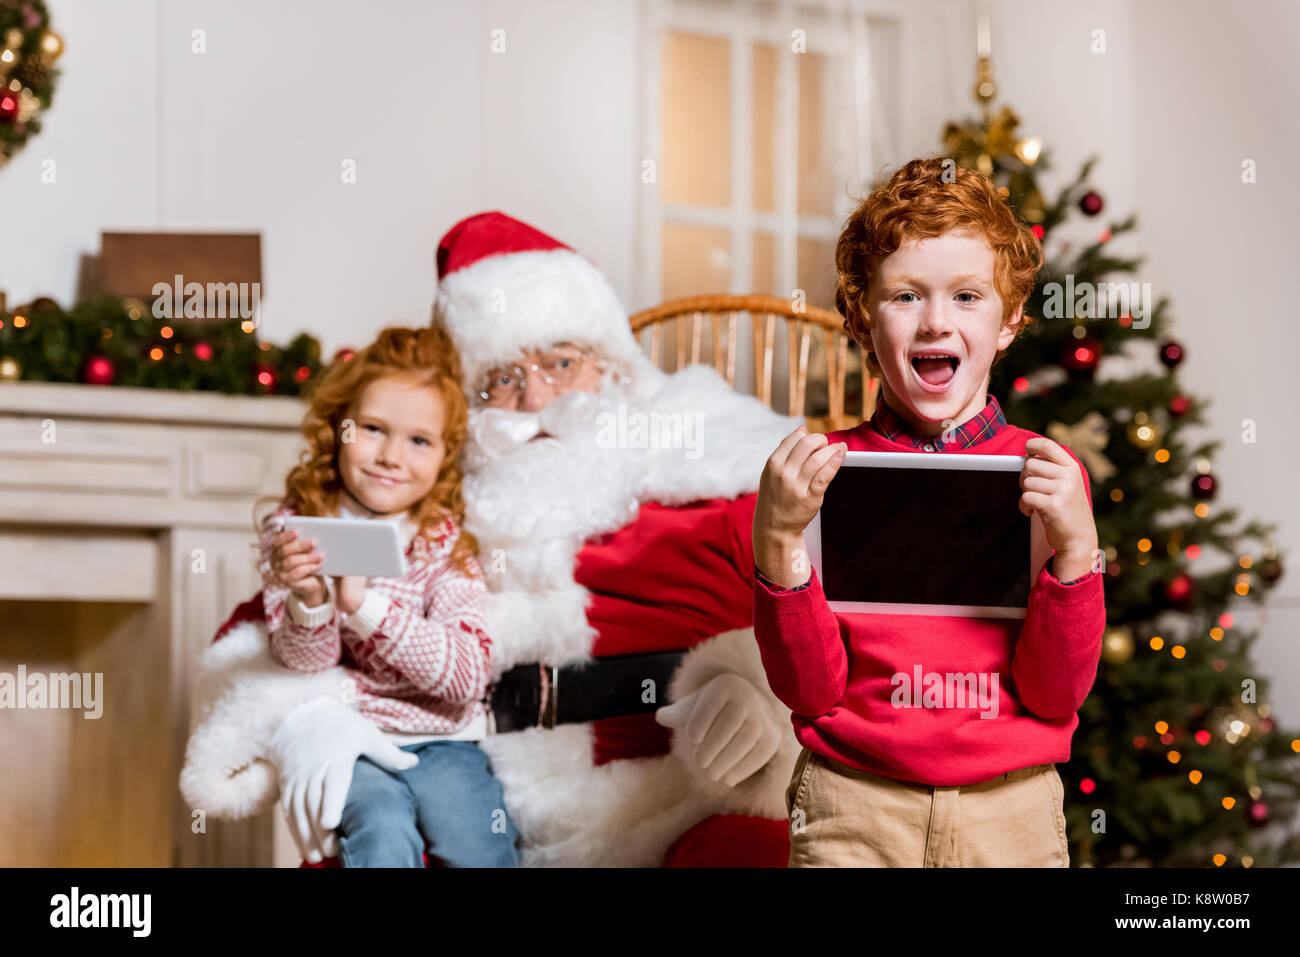 santa claus and children with digital devices - Stock Image